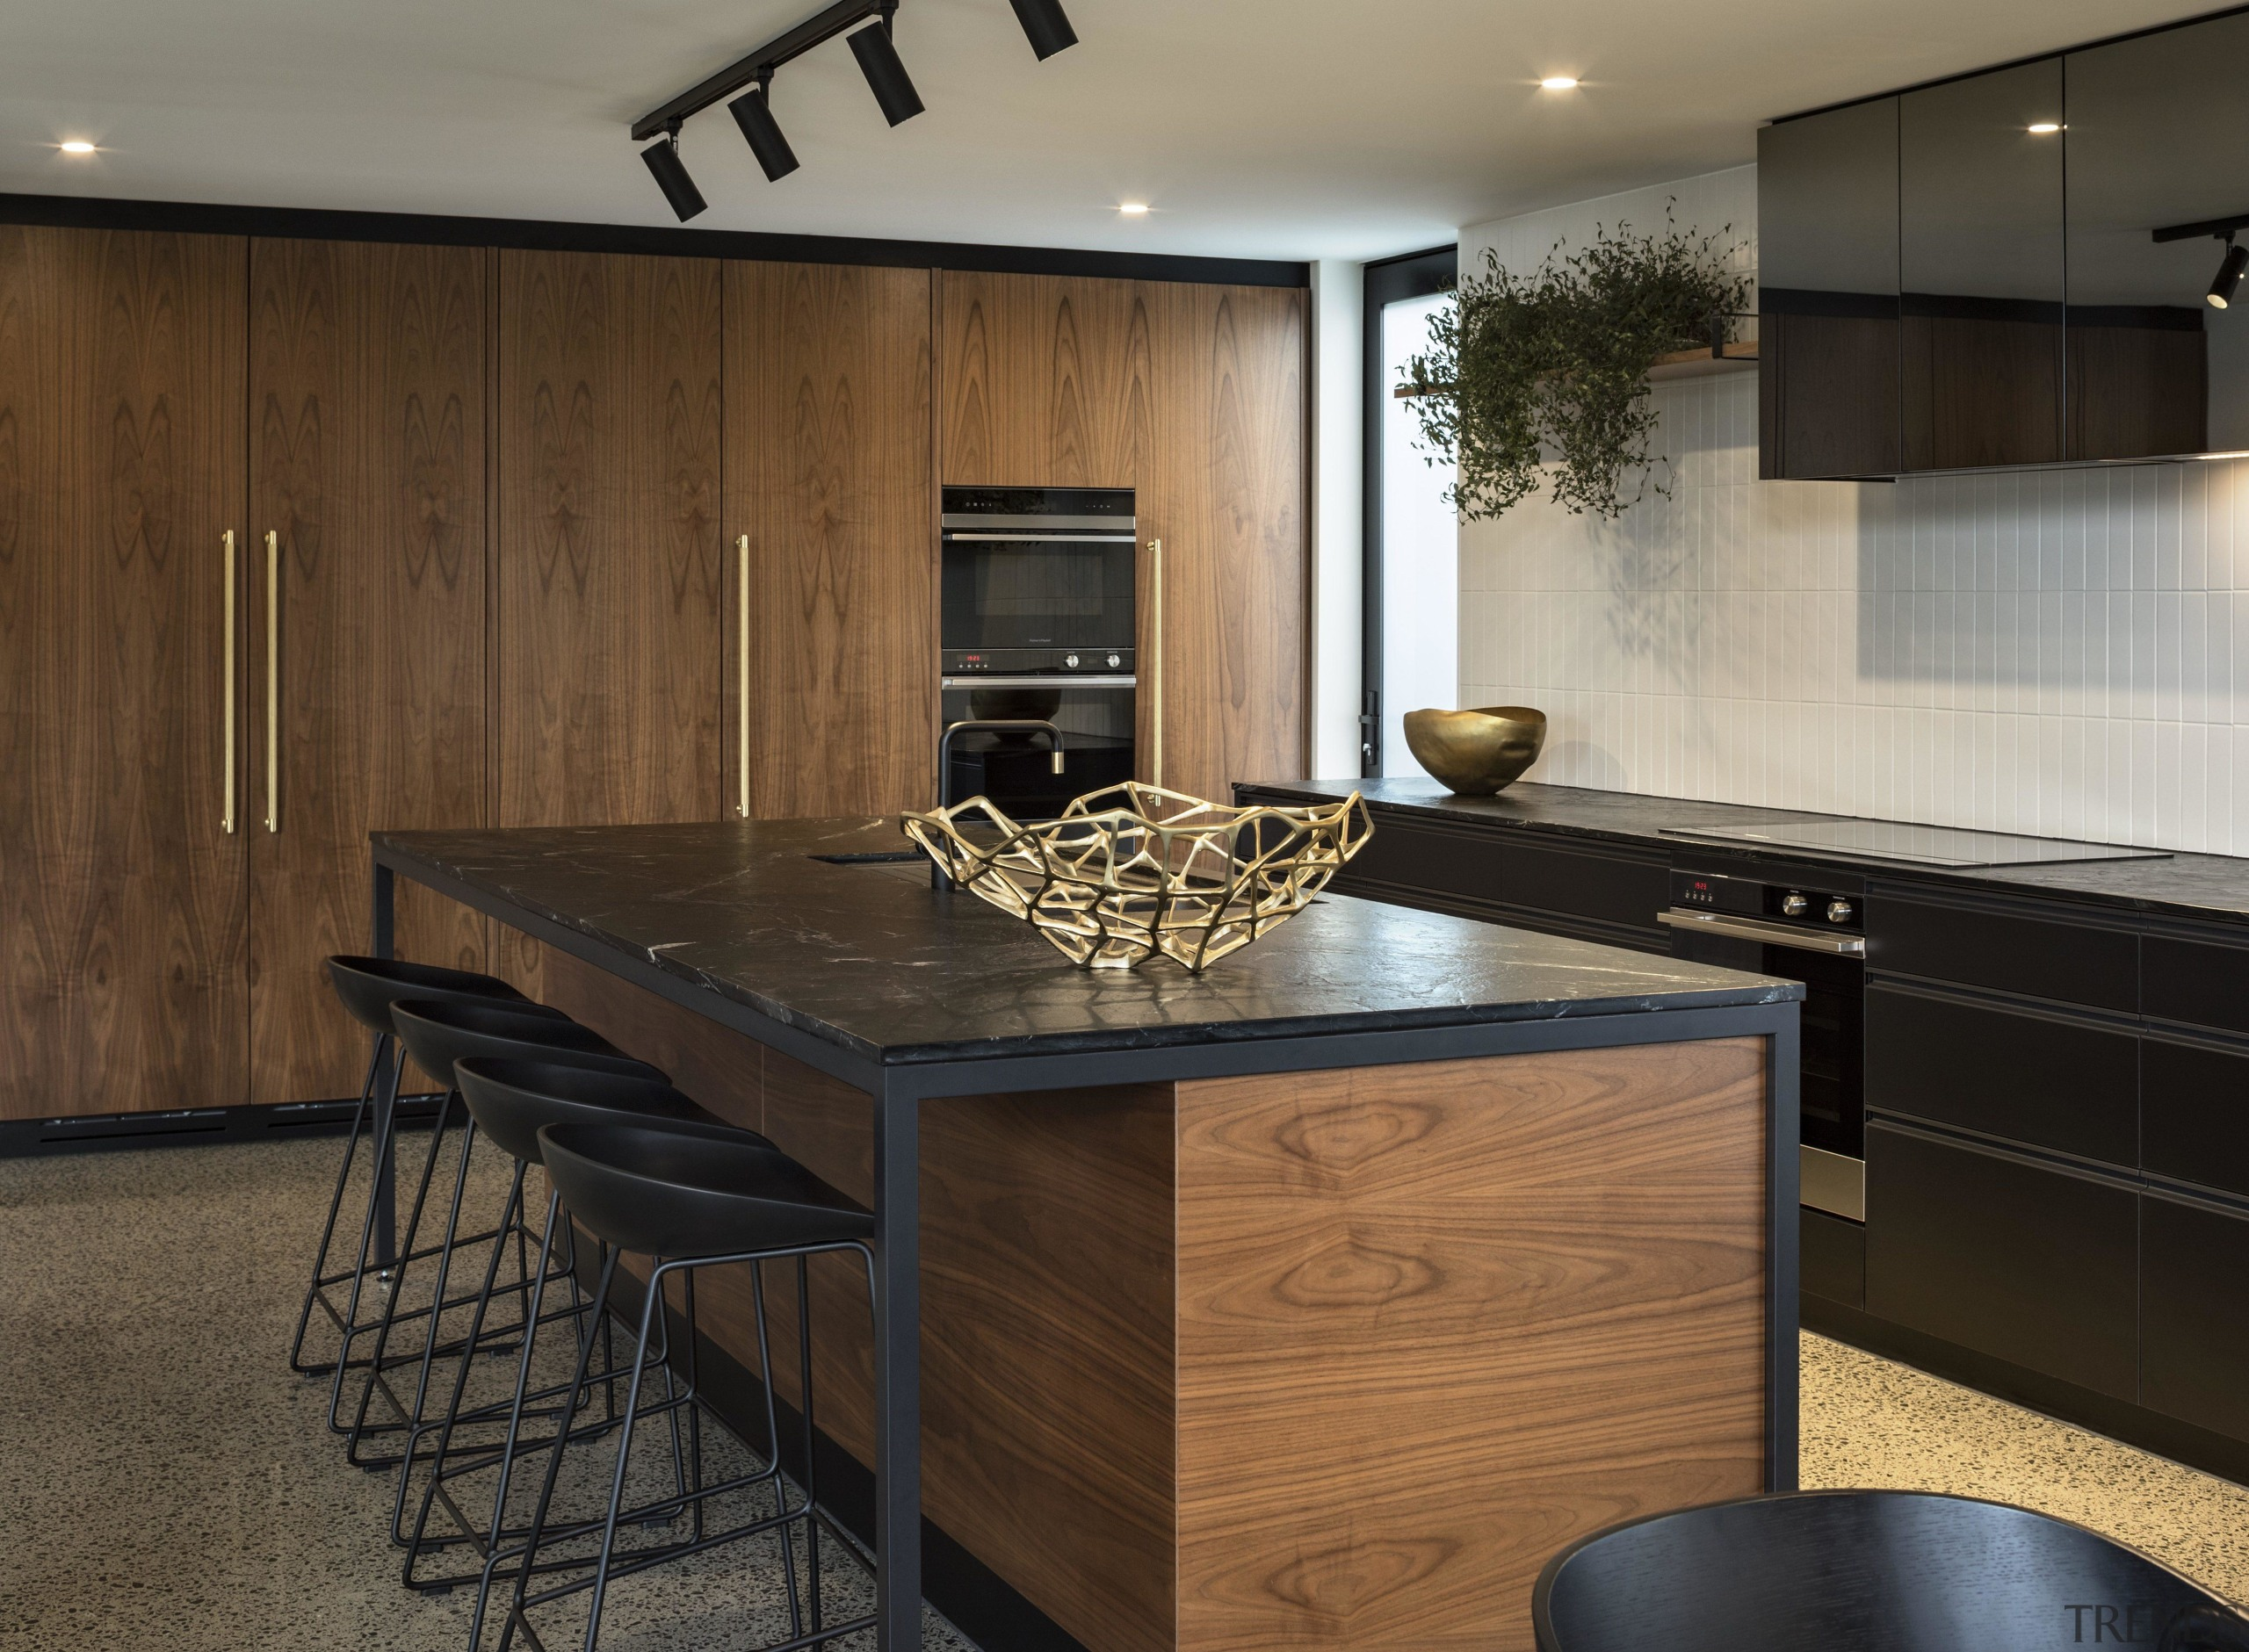 Hand-crafted cabinetry by RH Cabinetmakers means no surface